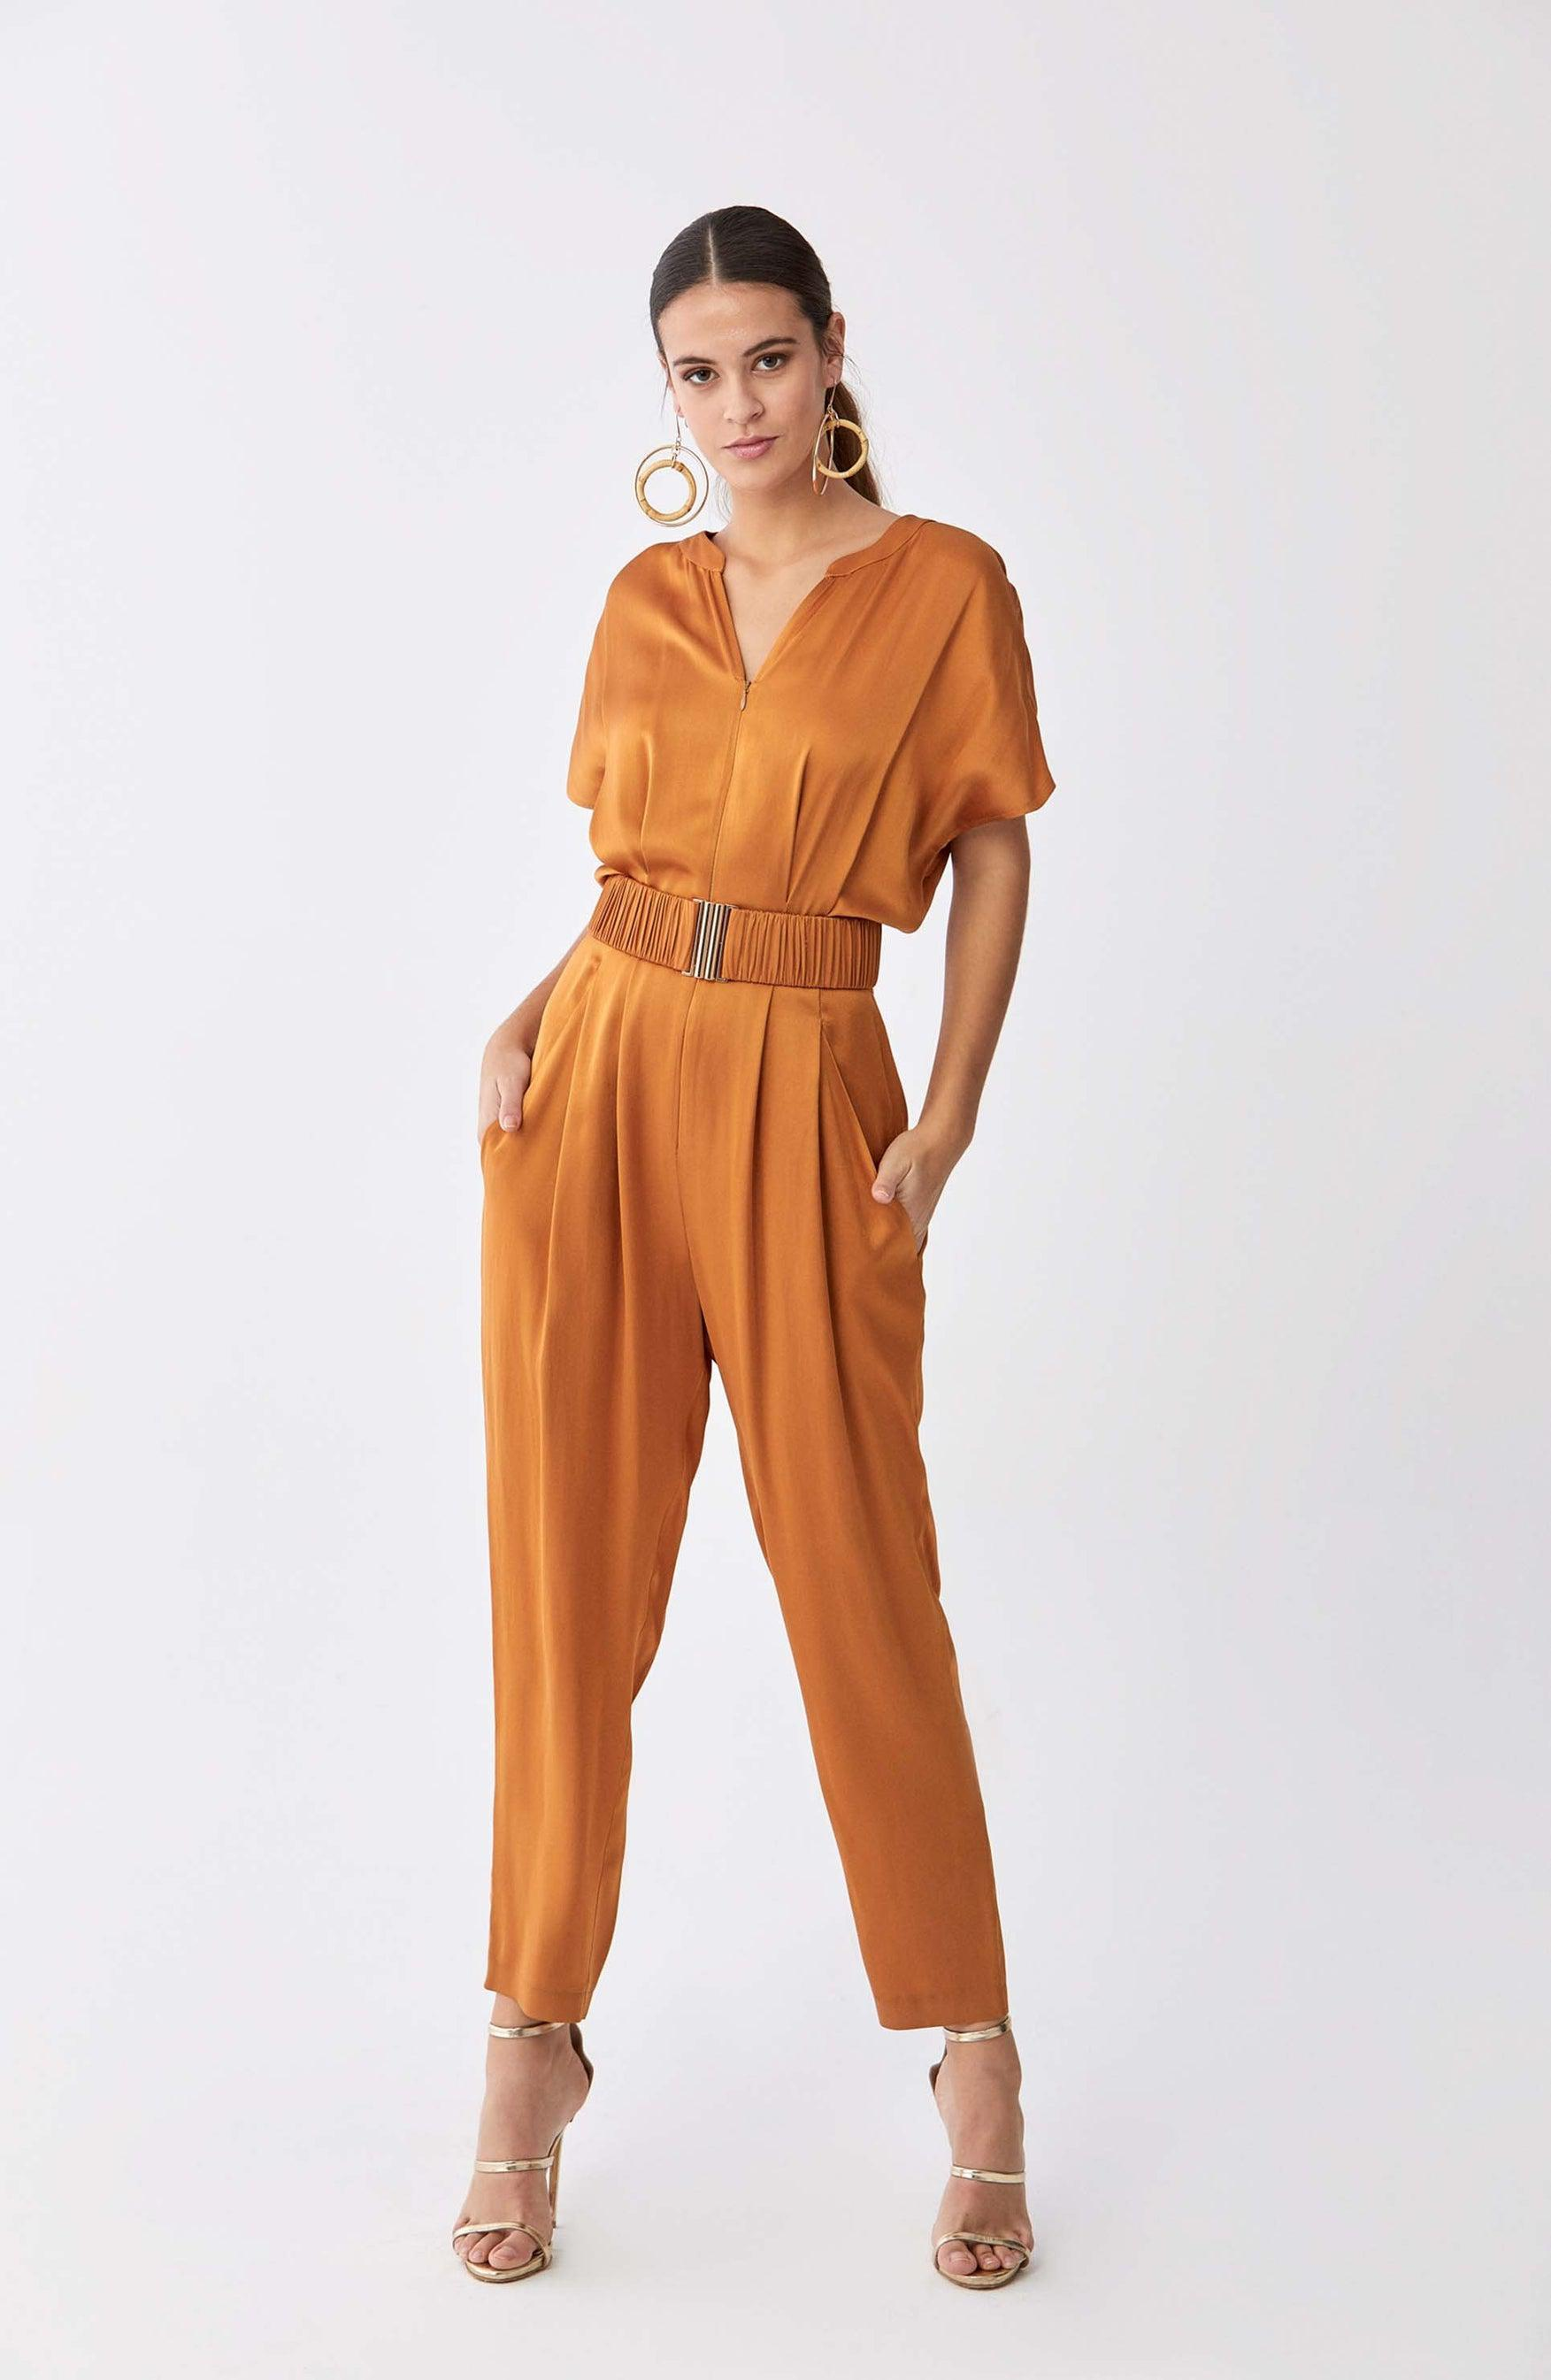 ROMAN USA-Gloss Tan Jumpsuit-- [MUSTARD]